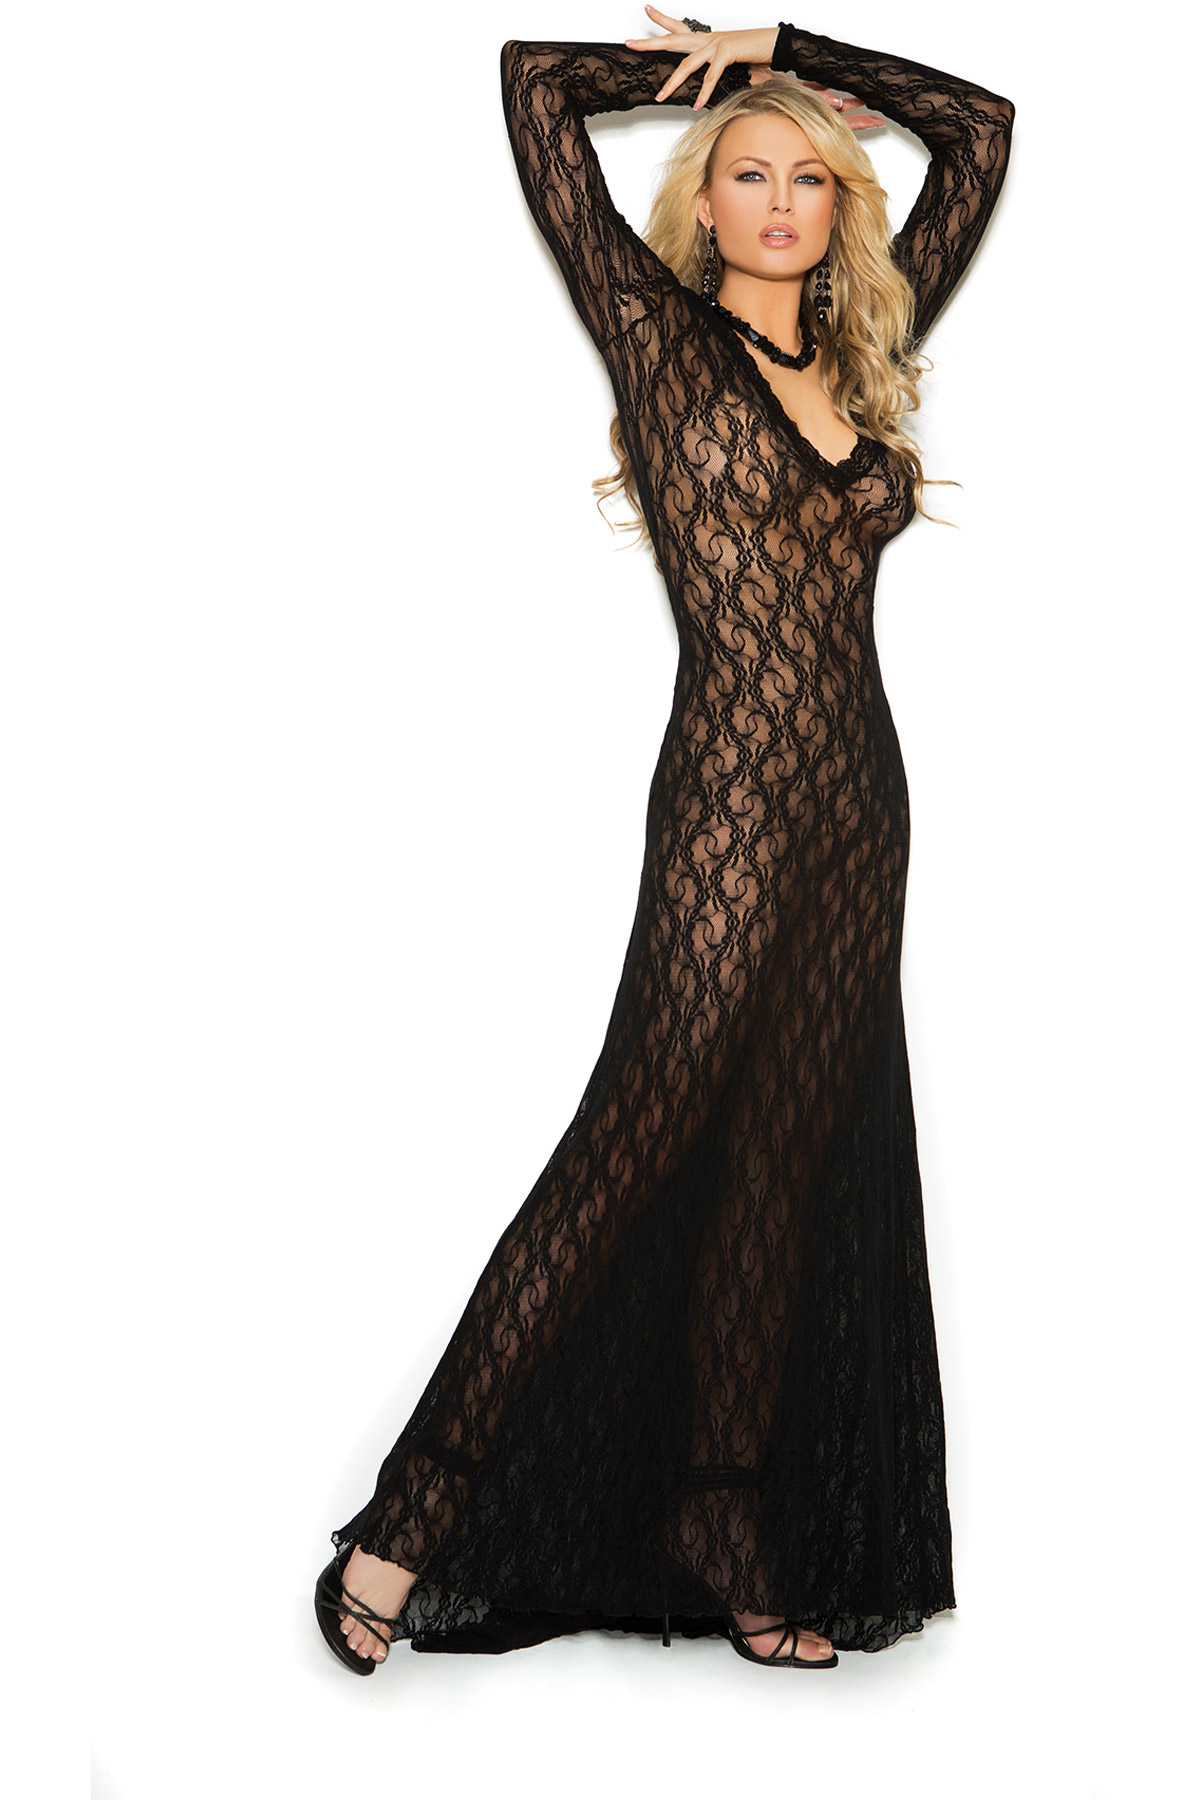 Nightwear Deep V Floral Lace Evening Gown Long Dress Lingerie Adult ...